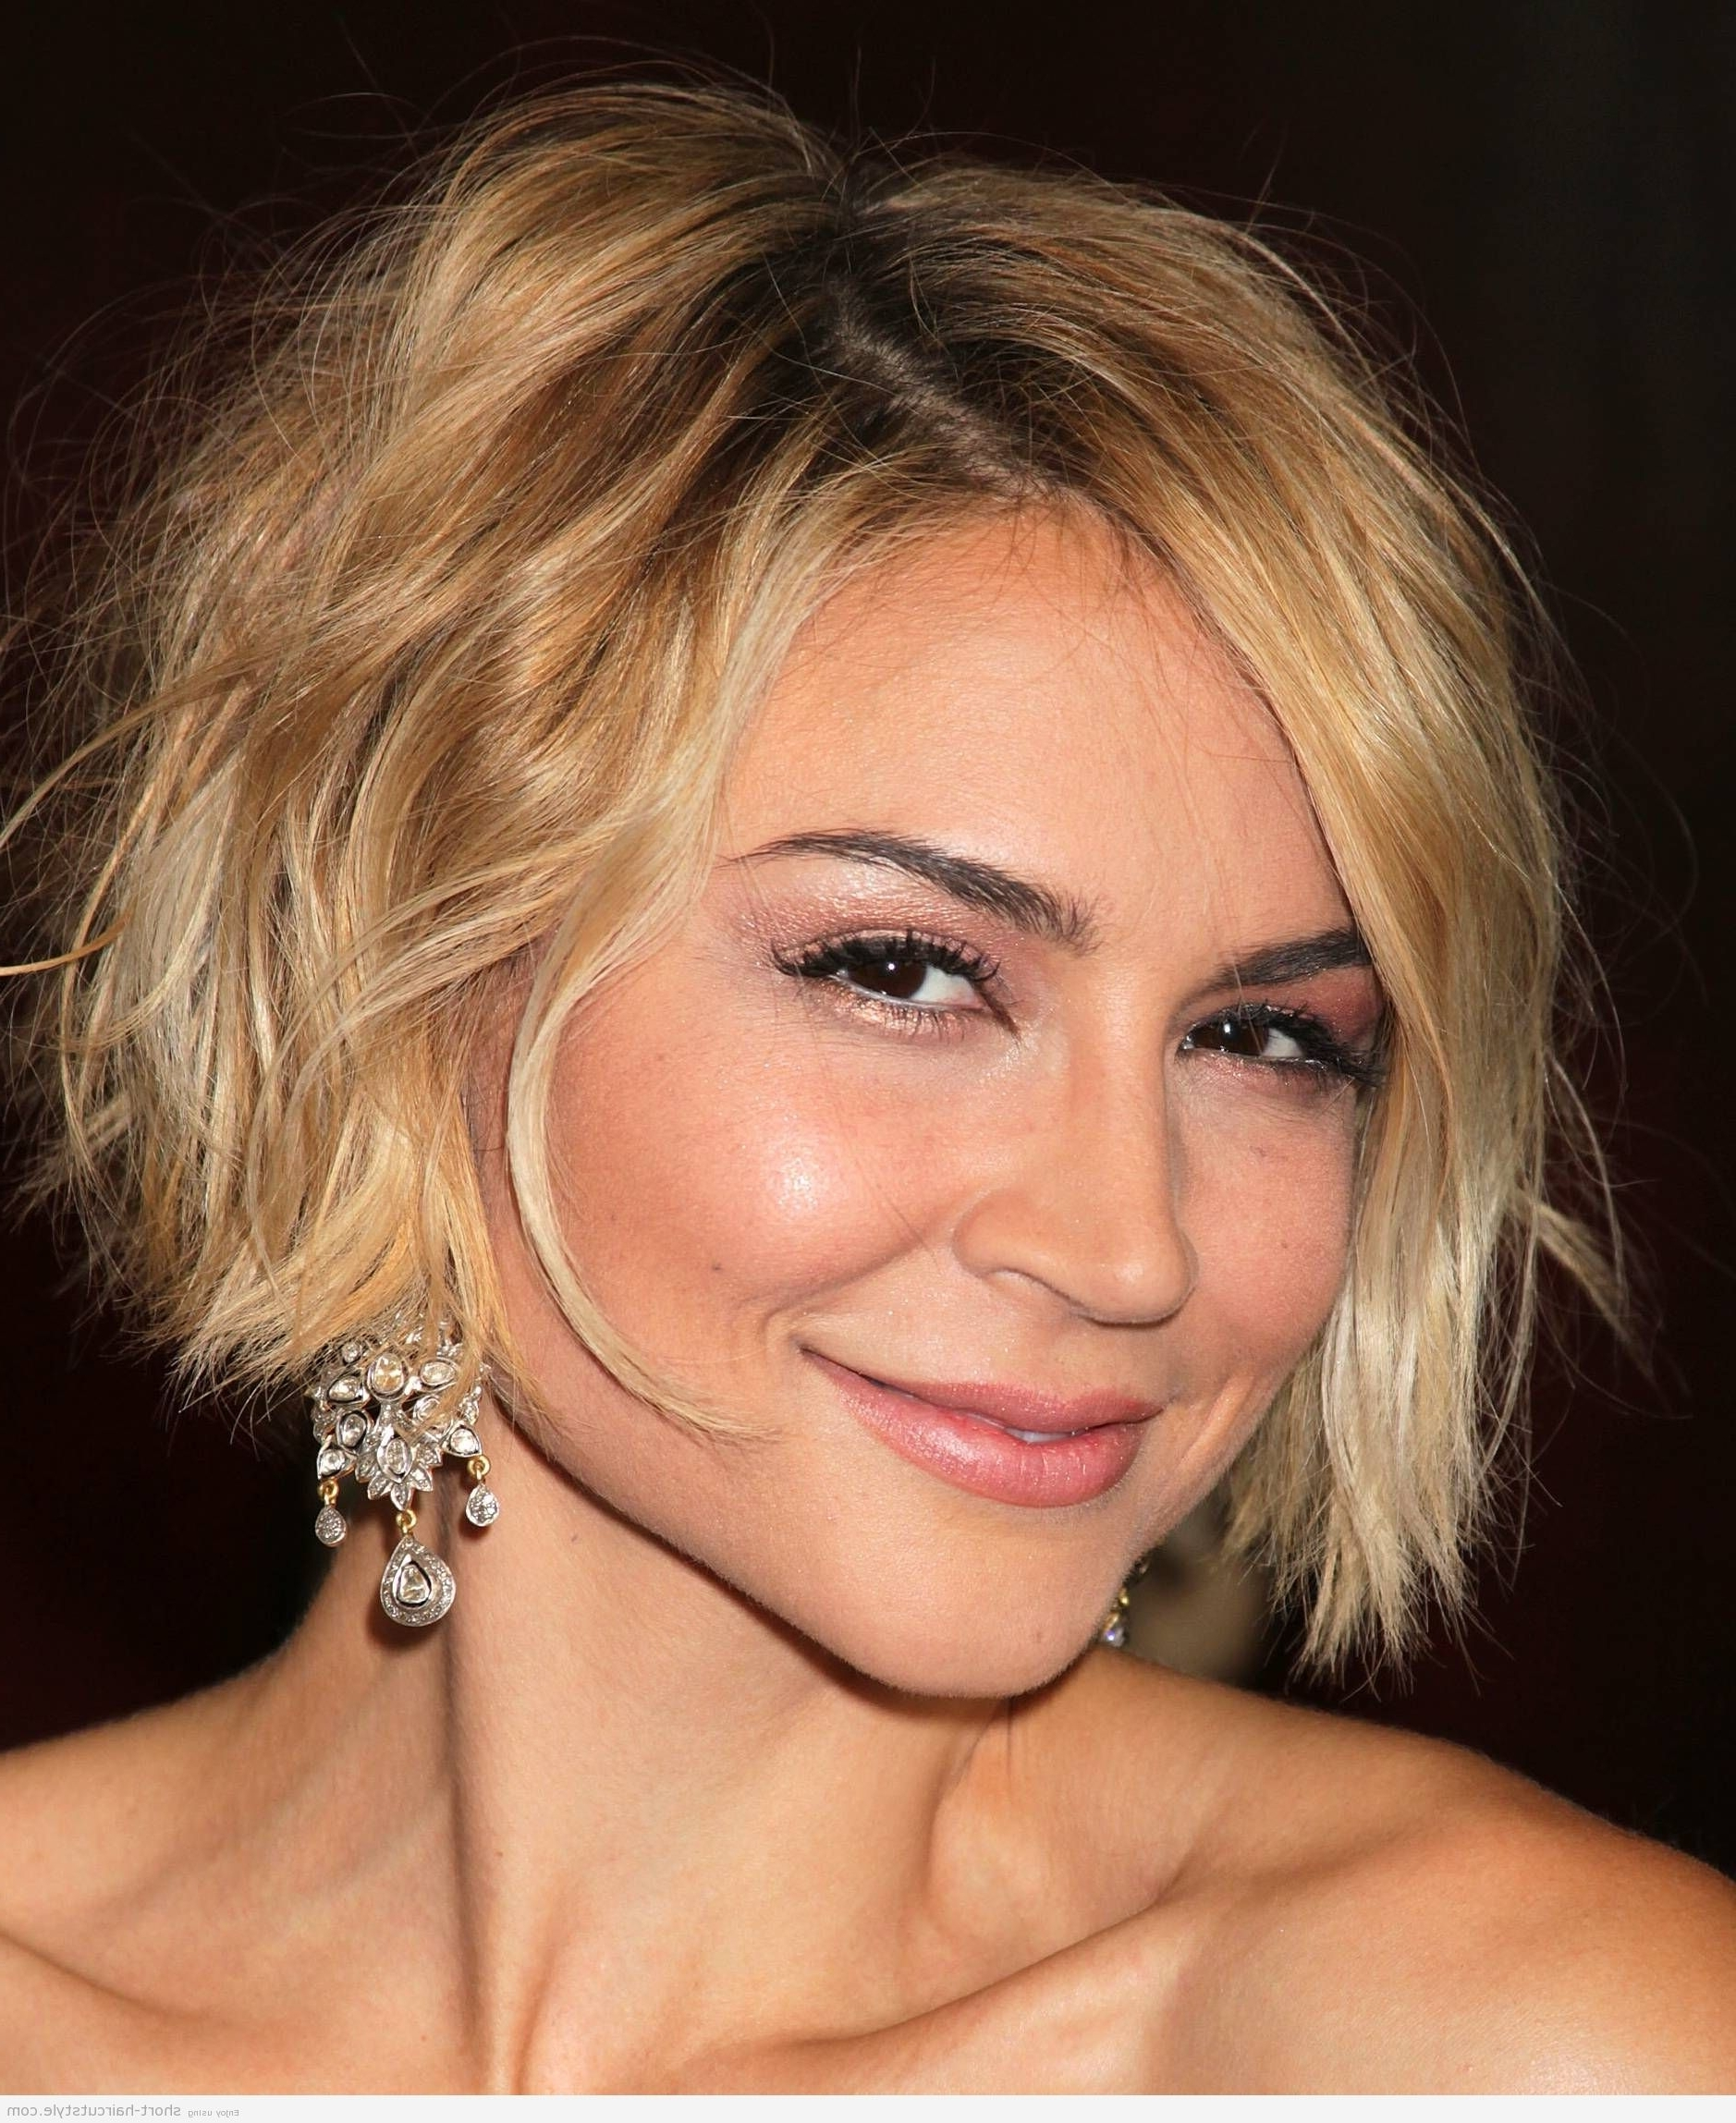 Image Gallery Of Pixie Hairstyles For Square Face View 11 Of 15 Photos